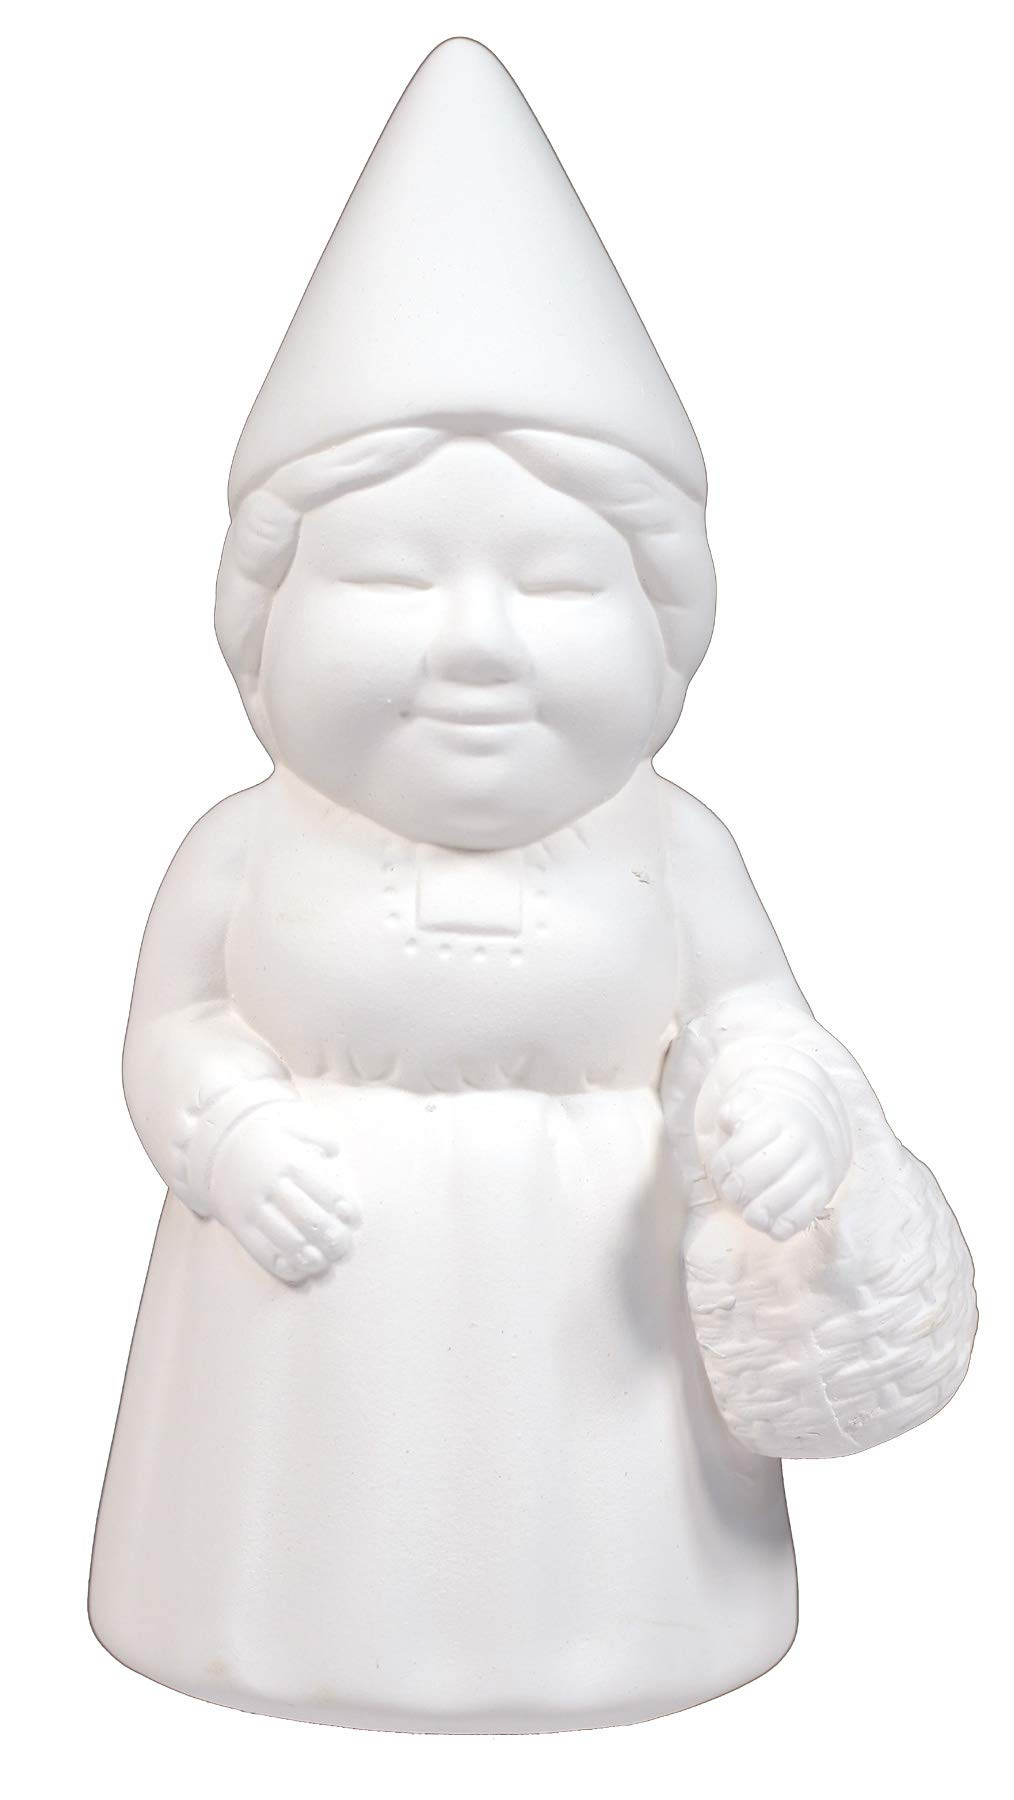 Creative Hobbies Female Garden Gnome -Case of 6 Pieces - 8 inch Tall Unfinished Ceramic Bisque Gnome-y, with How to Paint Your Own Pottery Booklet